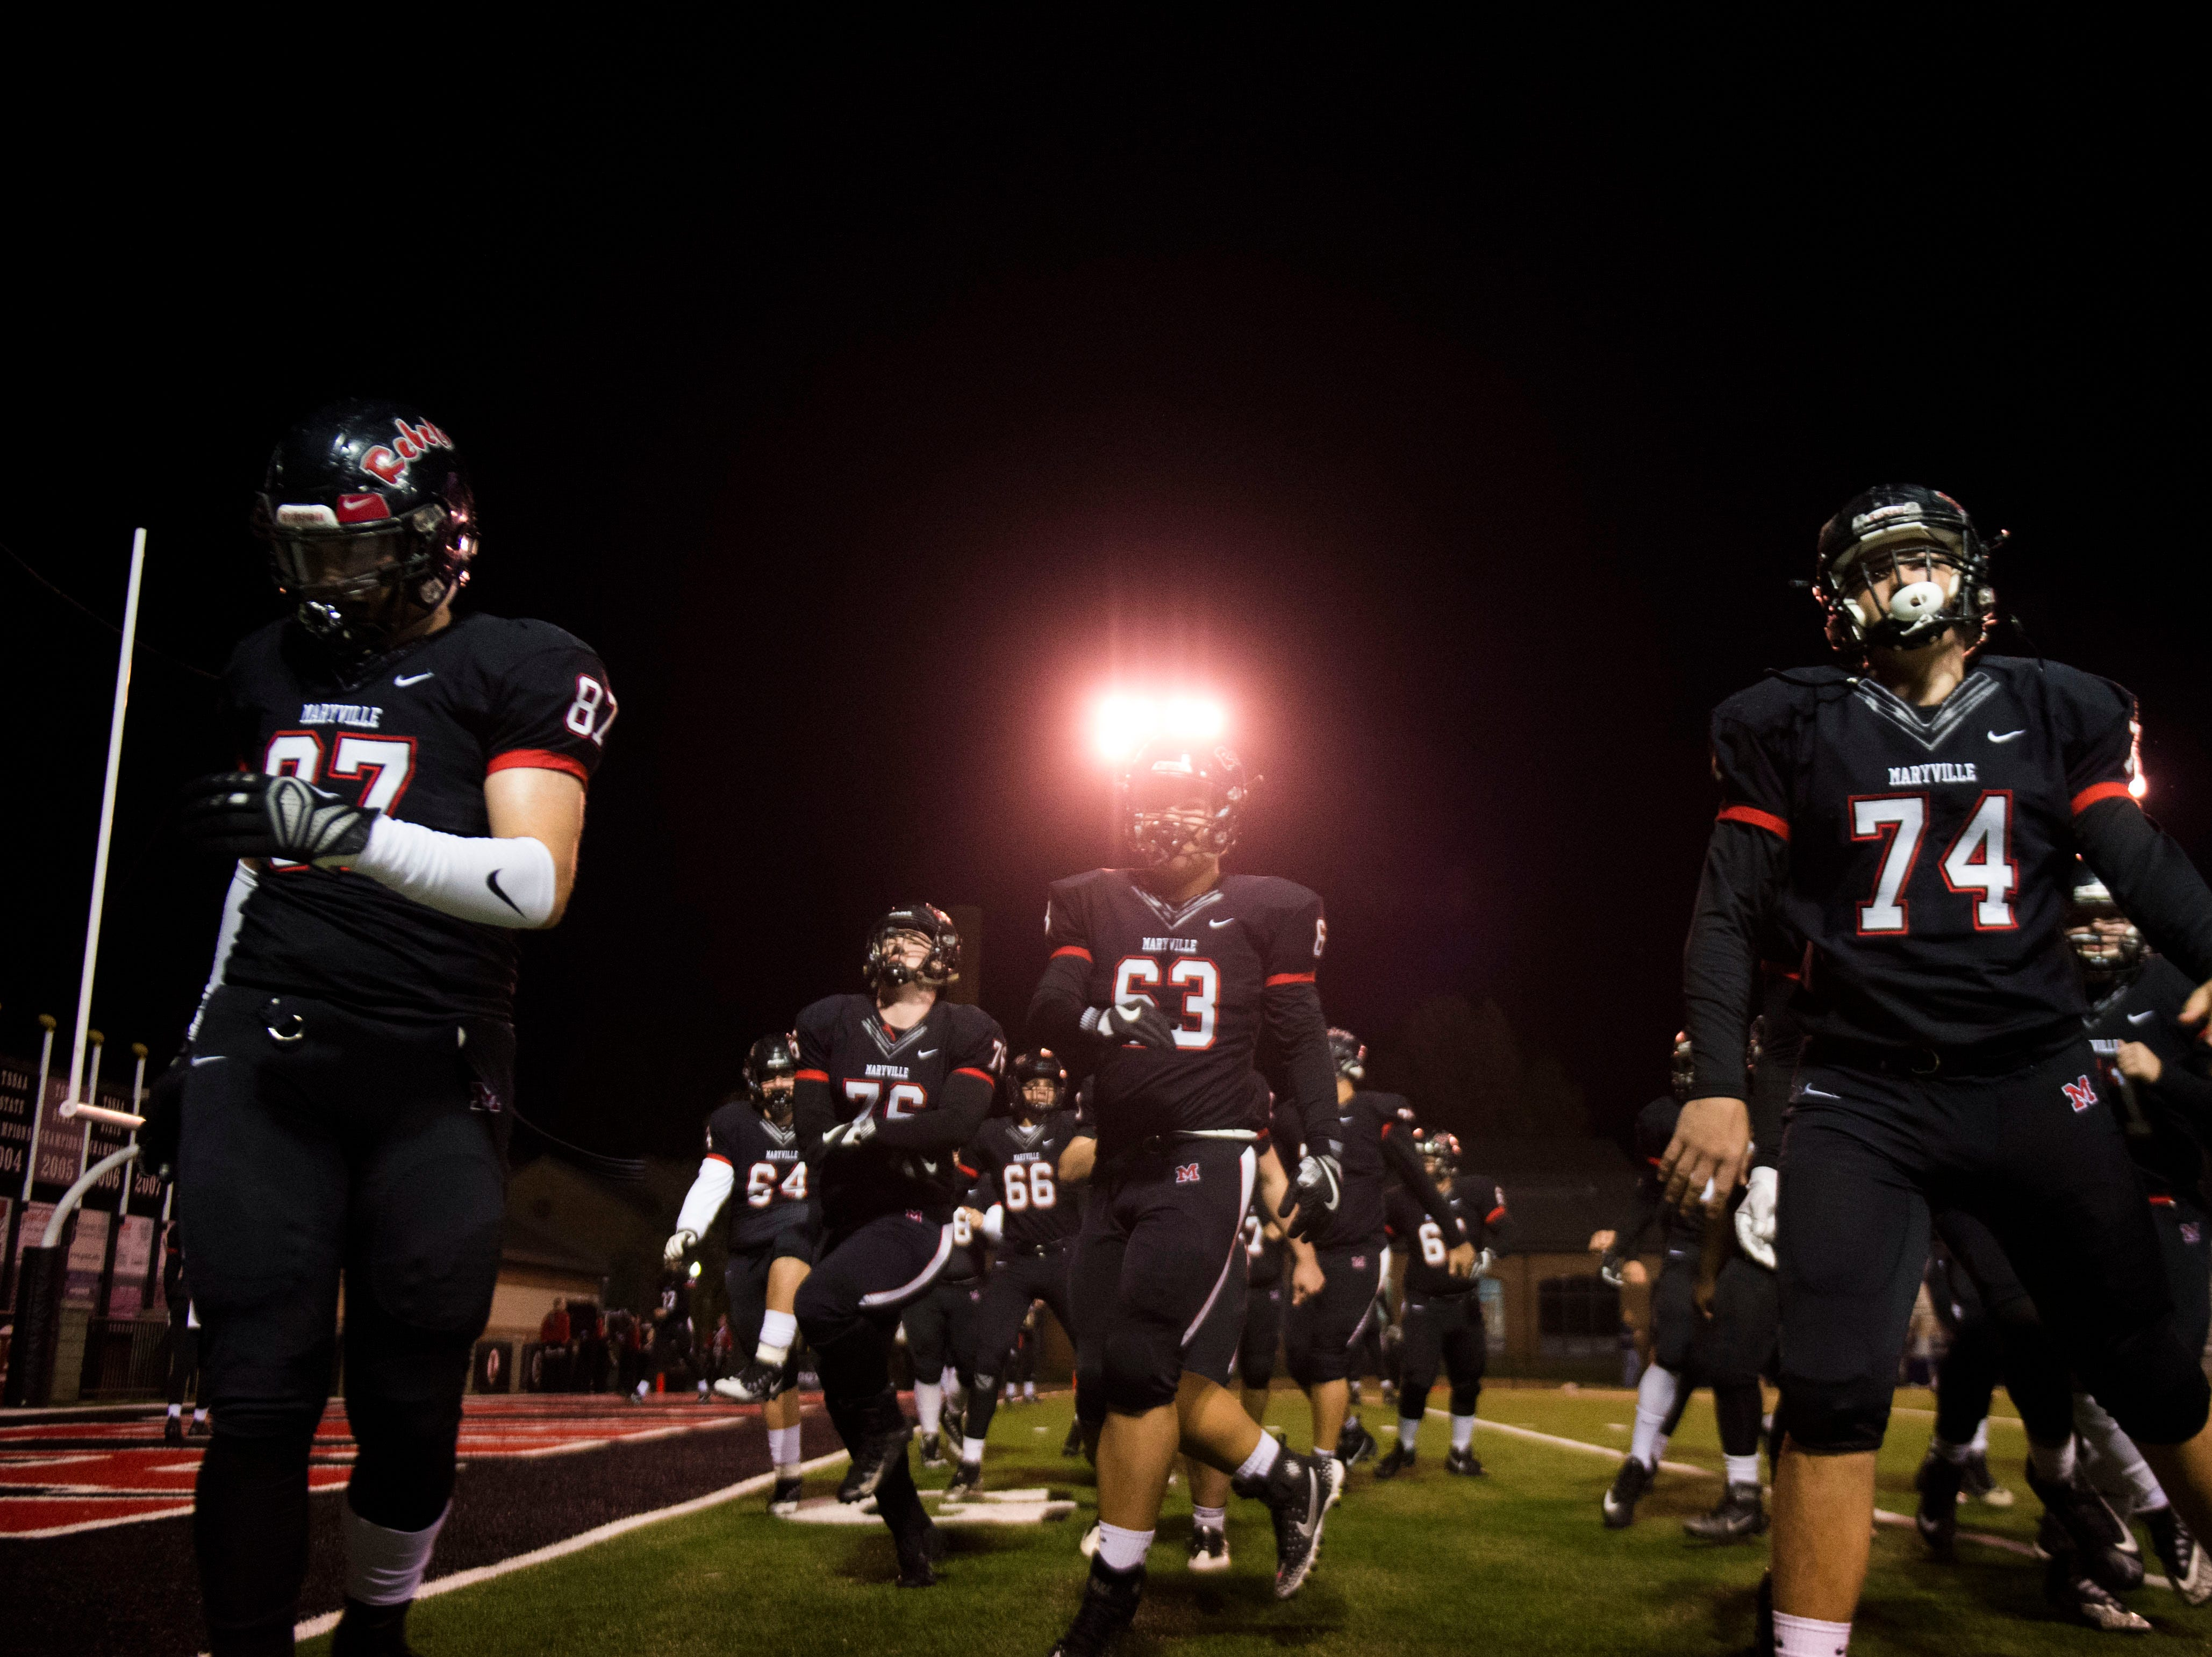 Maryville takes the field before a game between Maryville and Farragut at Maryville Friday, Nov. 16, 2018.